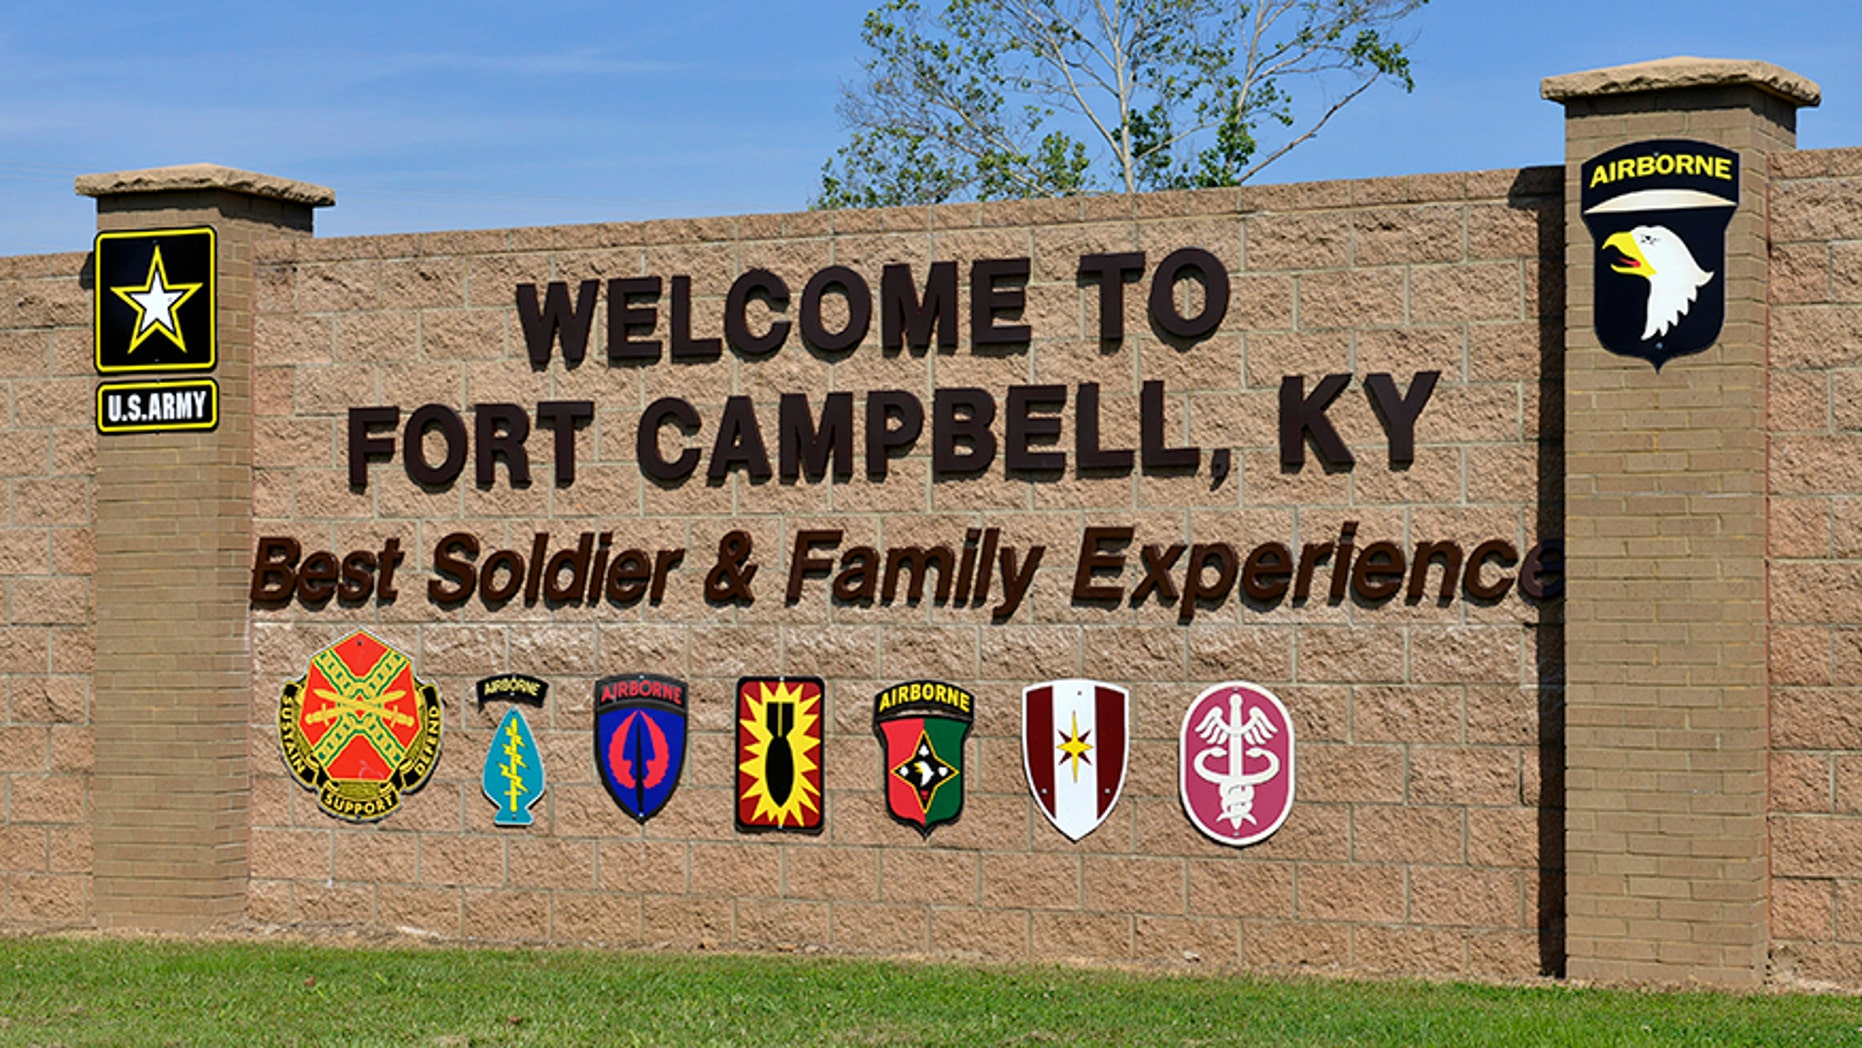 More than $1 million of U.S. military equipment was stolen from Fort Campbell in Kentucky and sold on eBay, according to testimony from a federal trial this week.